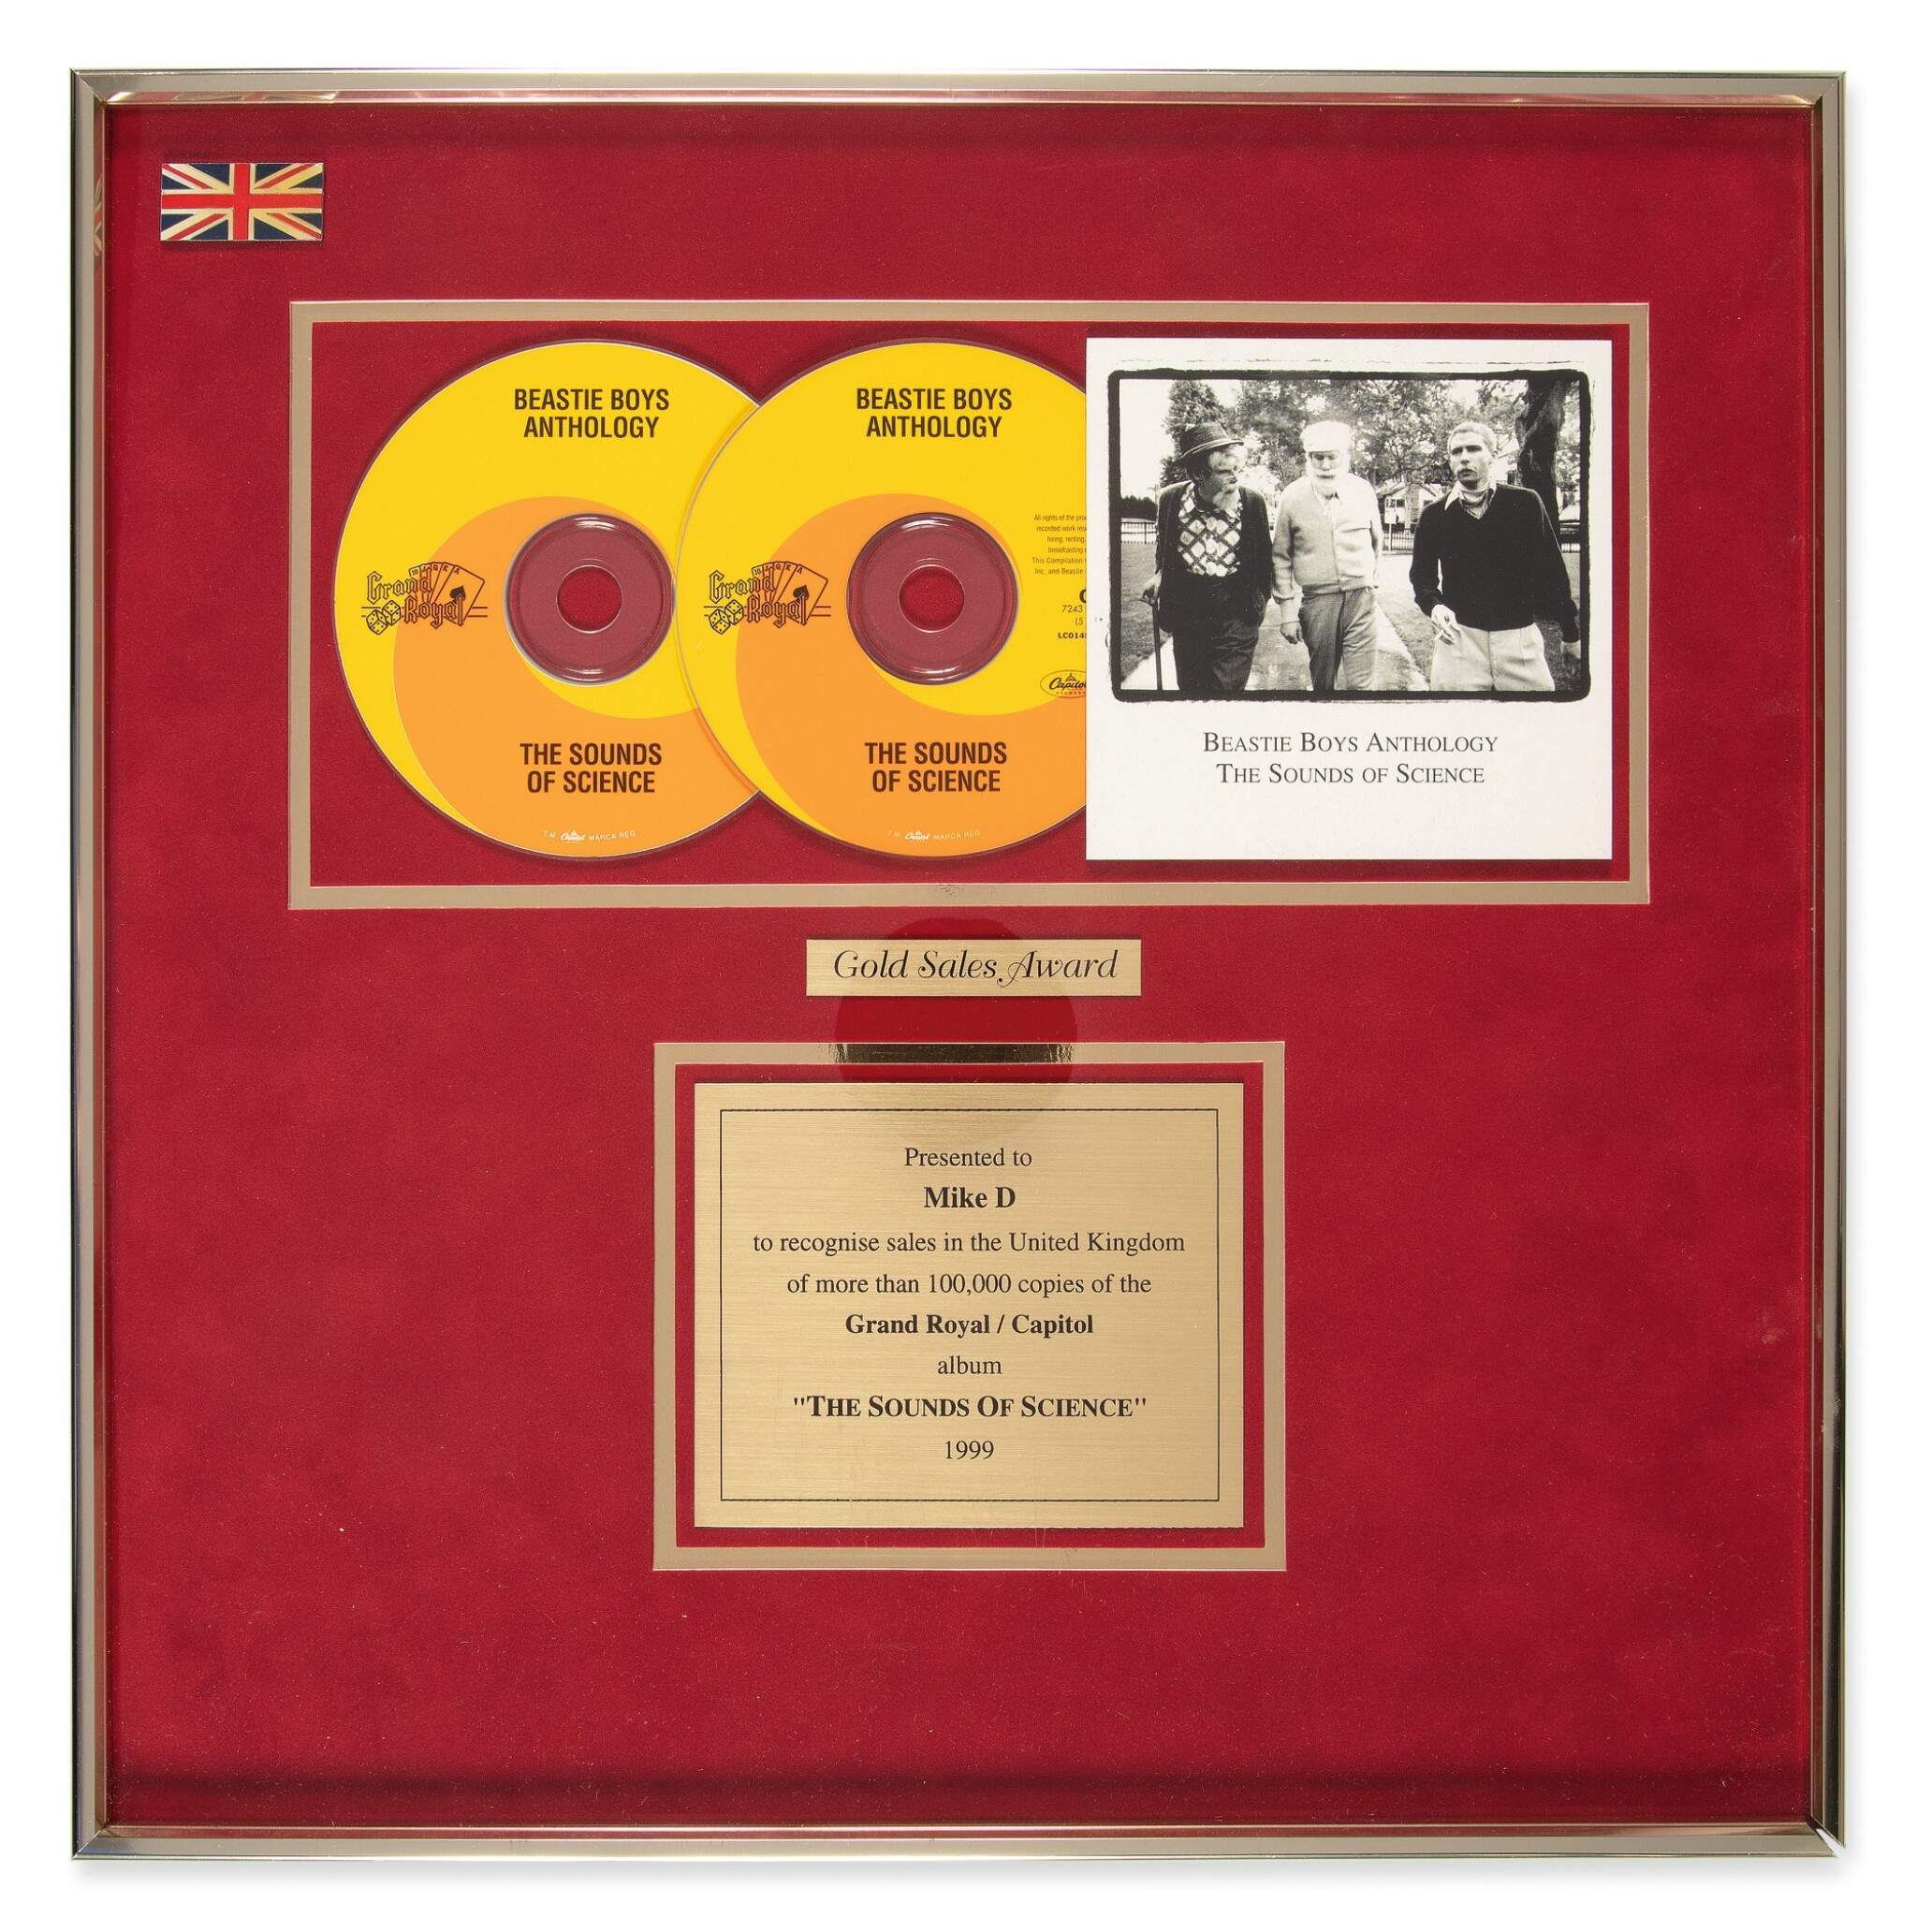 """Gold Sales award presented to Mike D for the Beastie Boys 1999 anthology album """"The Sounds of Science"""" for more 100,000 copies sold in the United Kingdom."""